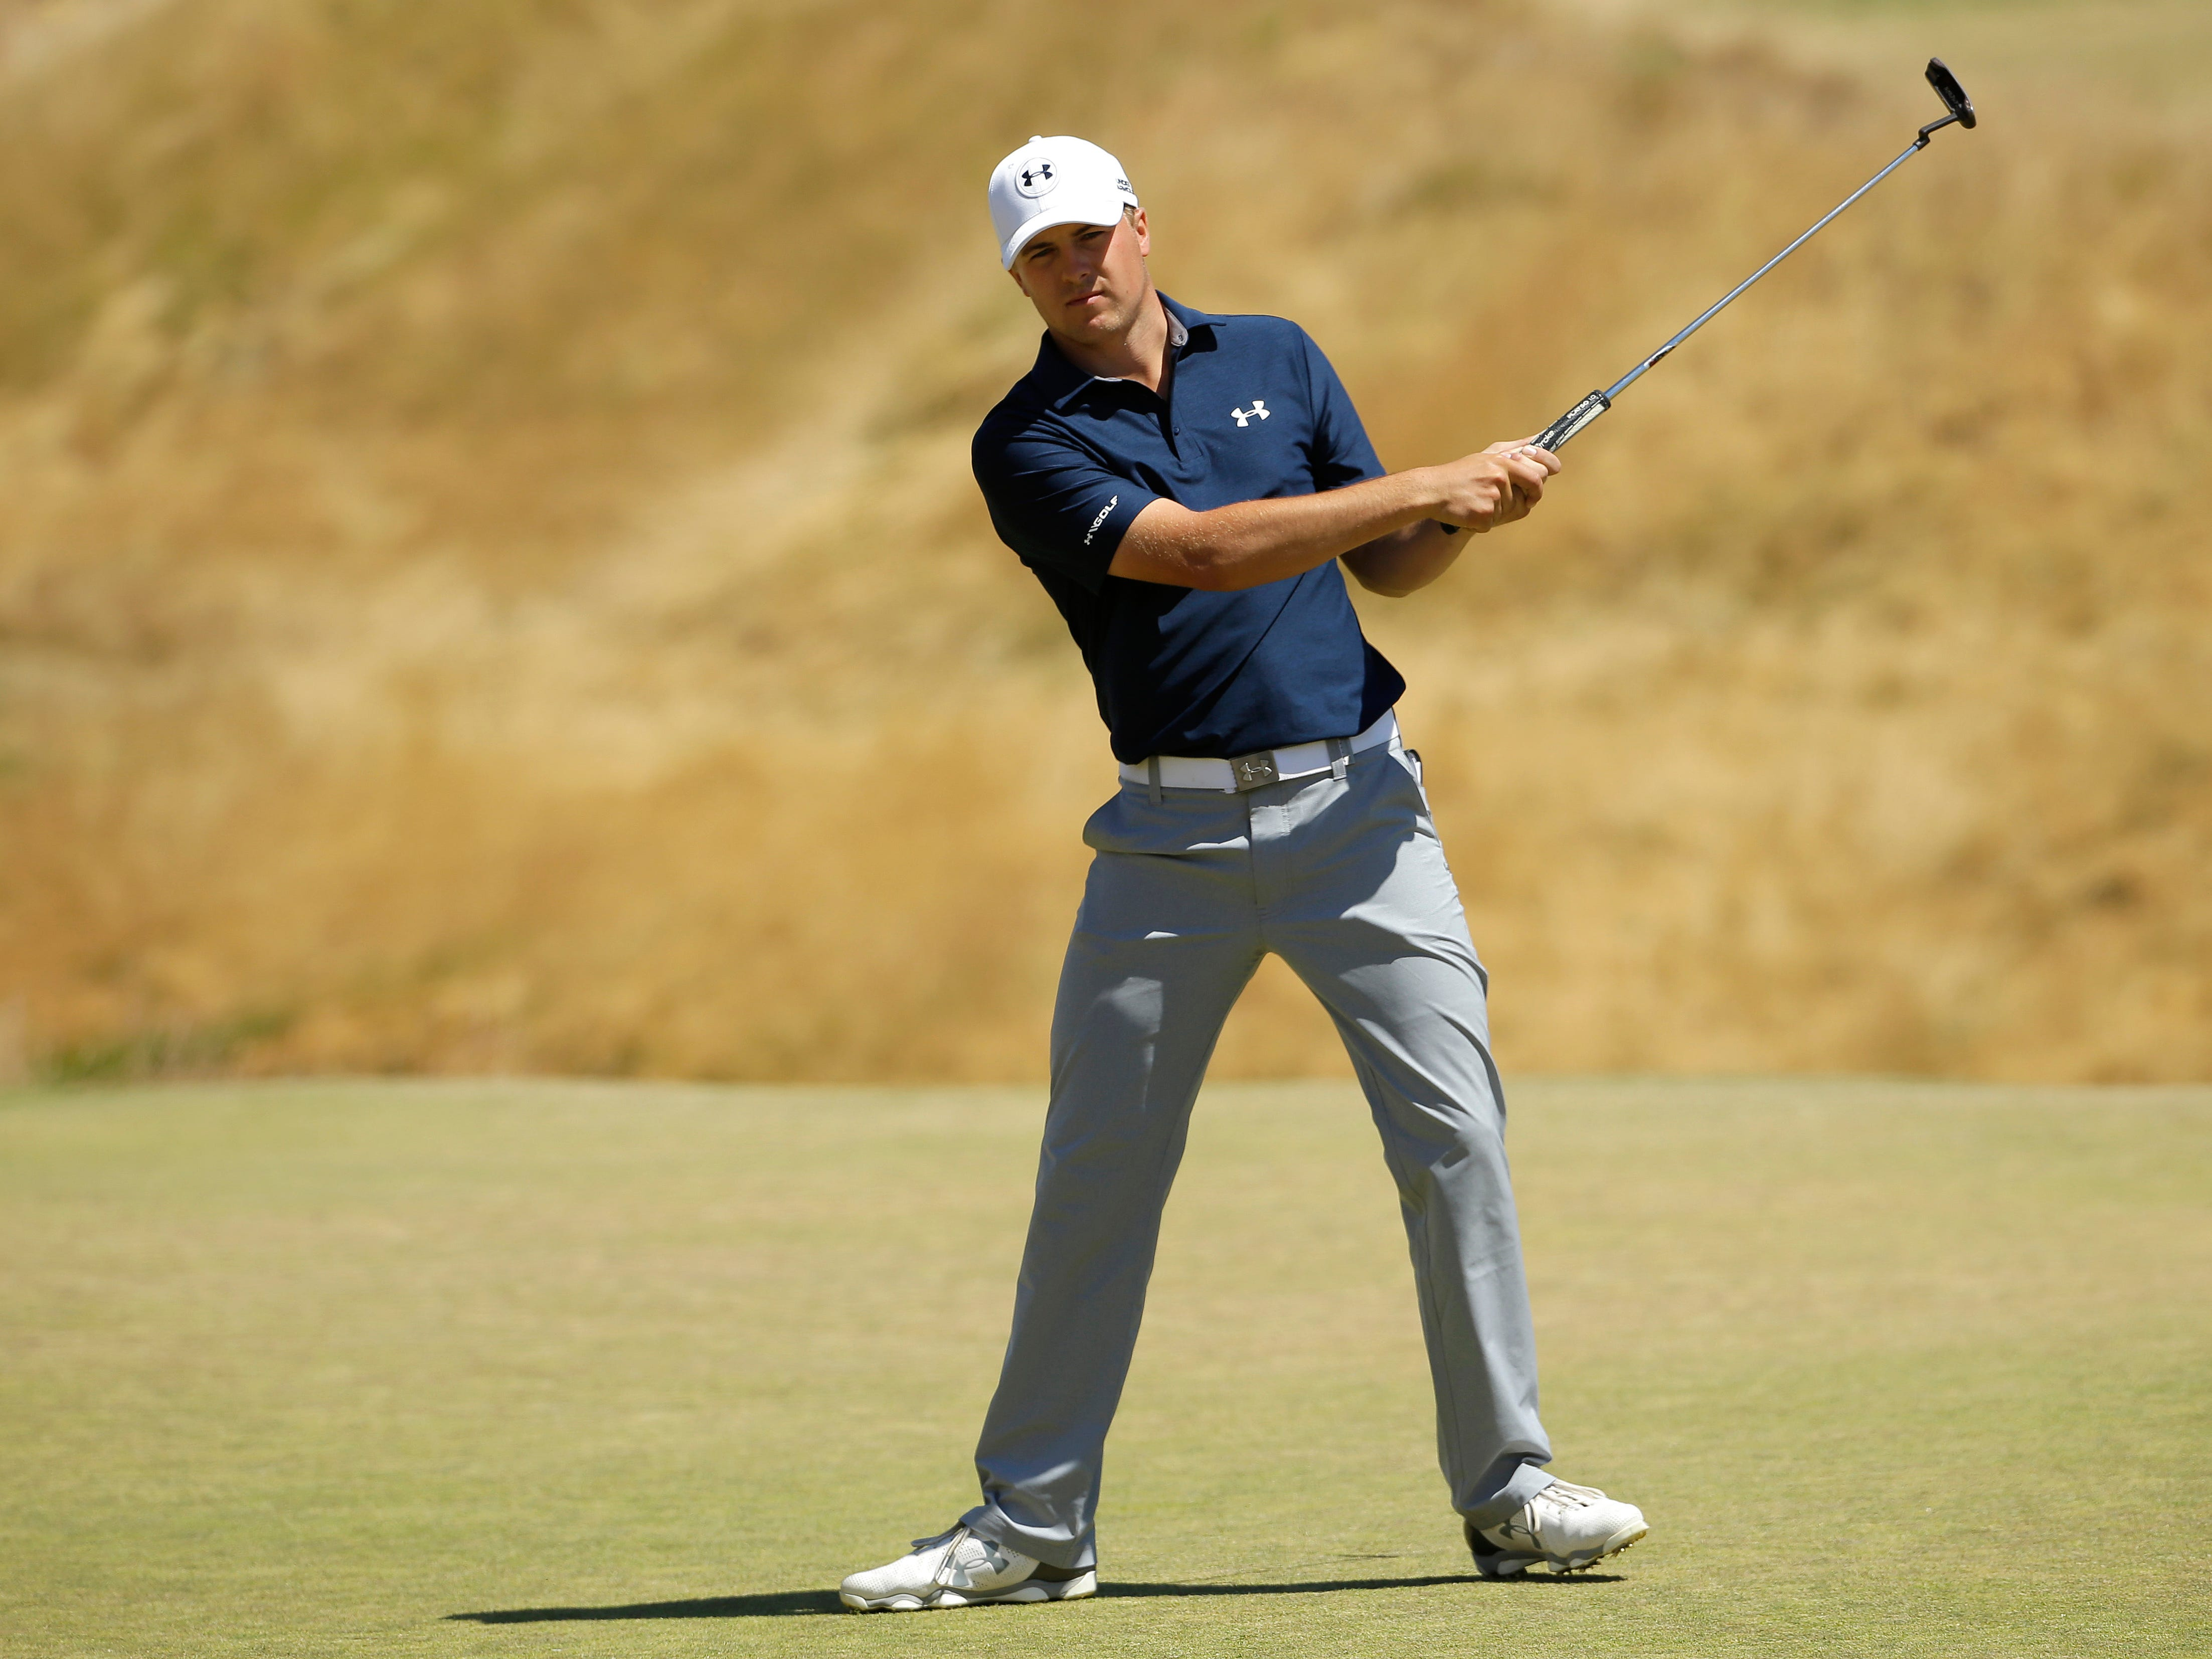 Jordan Spieth reacts after missing a putt on the sixth hole during the second round of the U.S. Open golf tournament at Chambers Bay on Friday, June 19, 2015 in University Place, Wash. (AP Photo/Ted S. Warren)